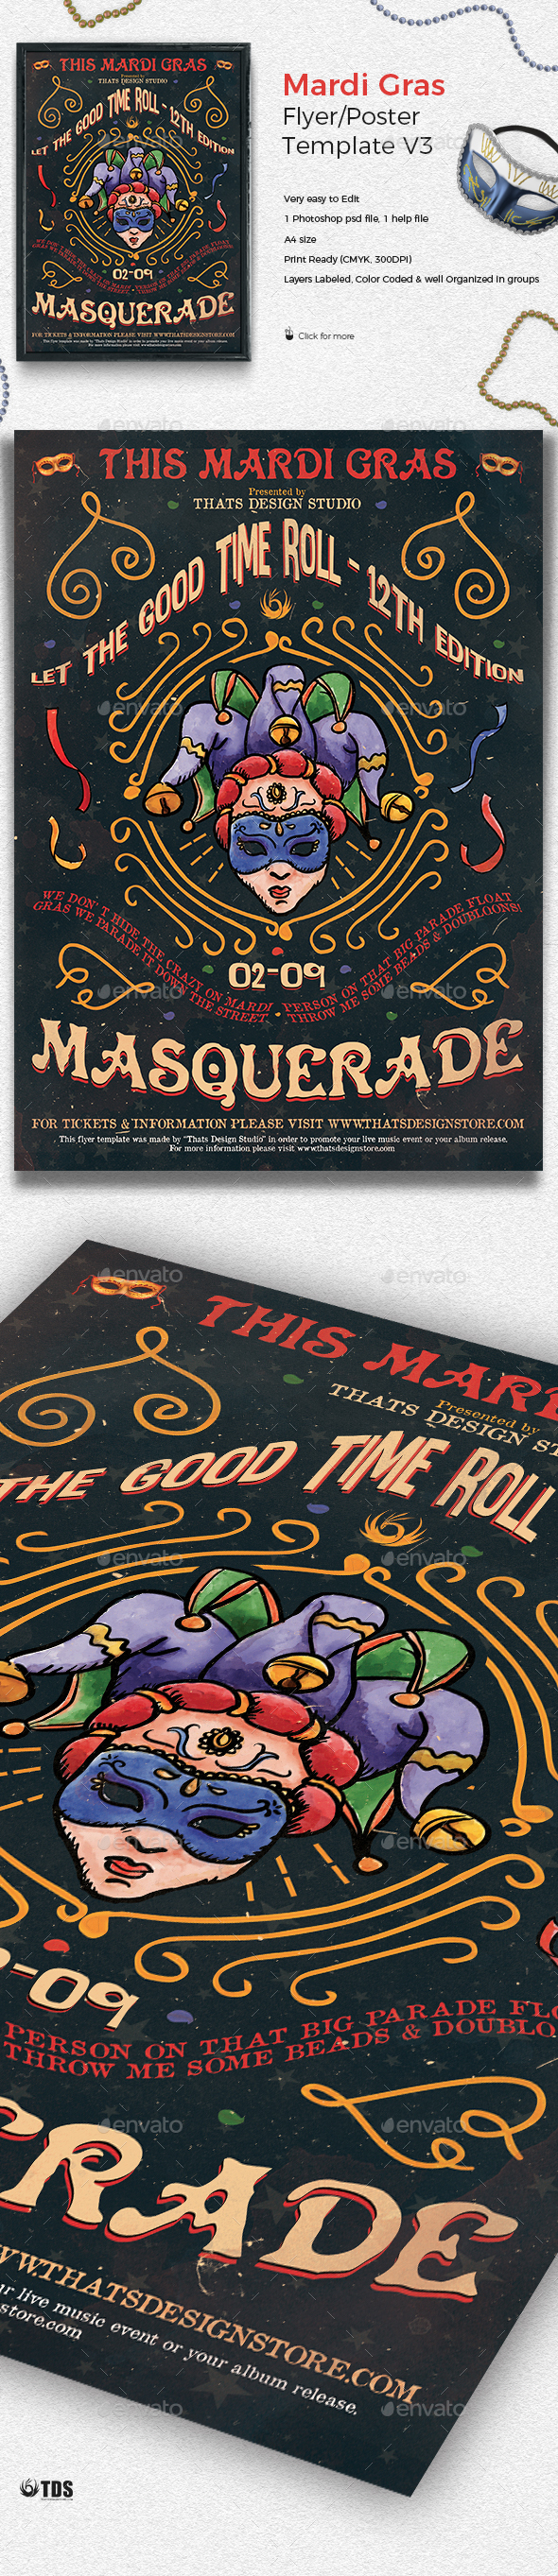 Mardi Gras Flyer Template V3 - Holidays Events